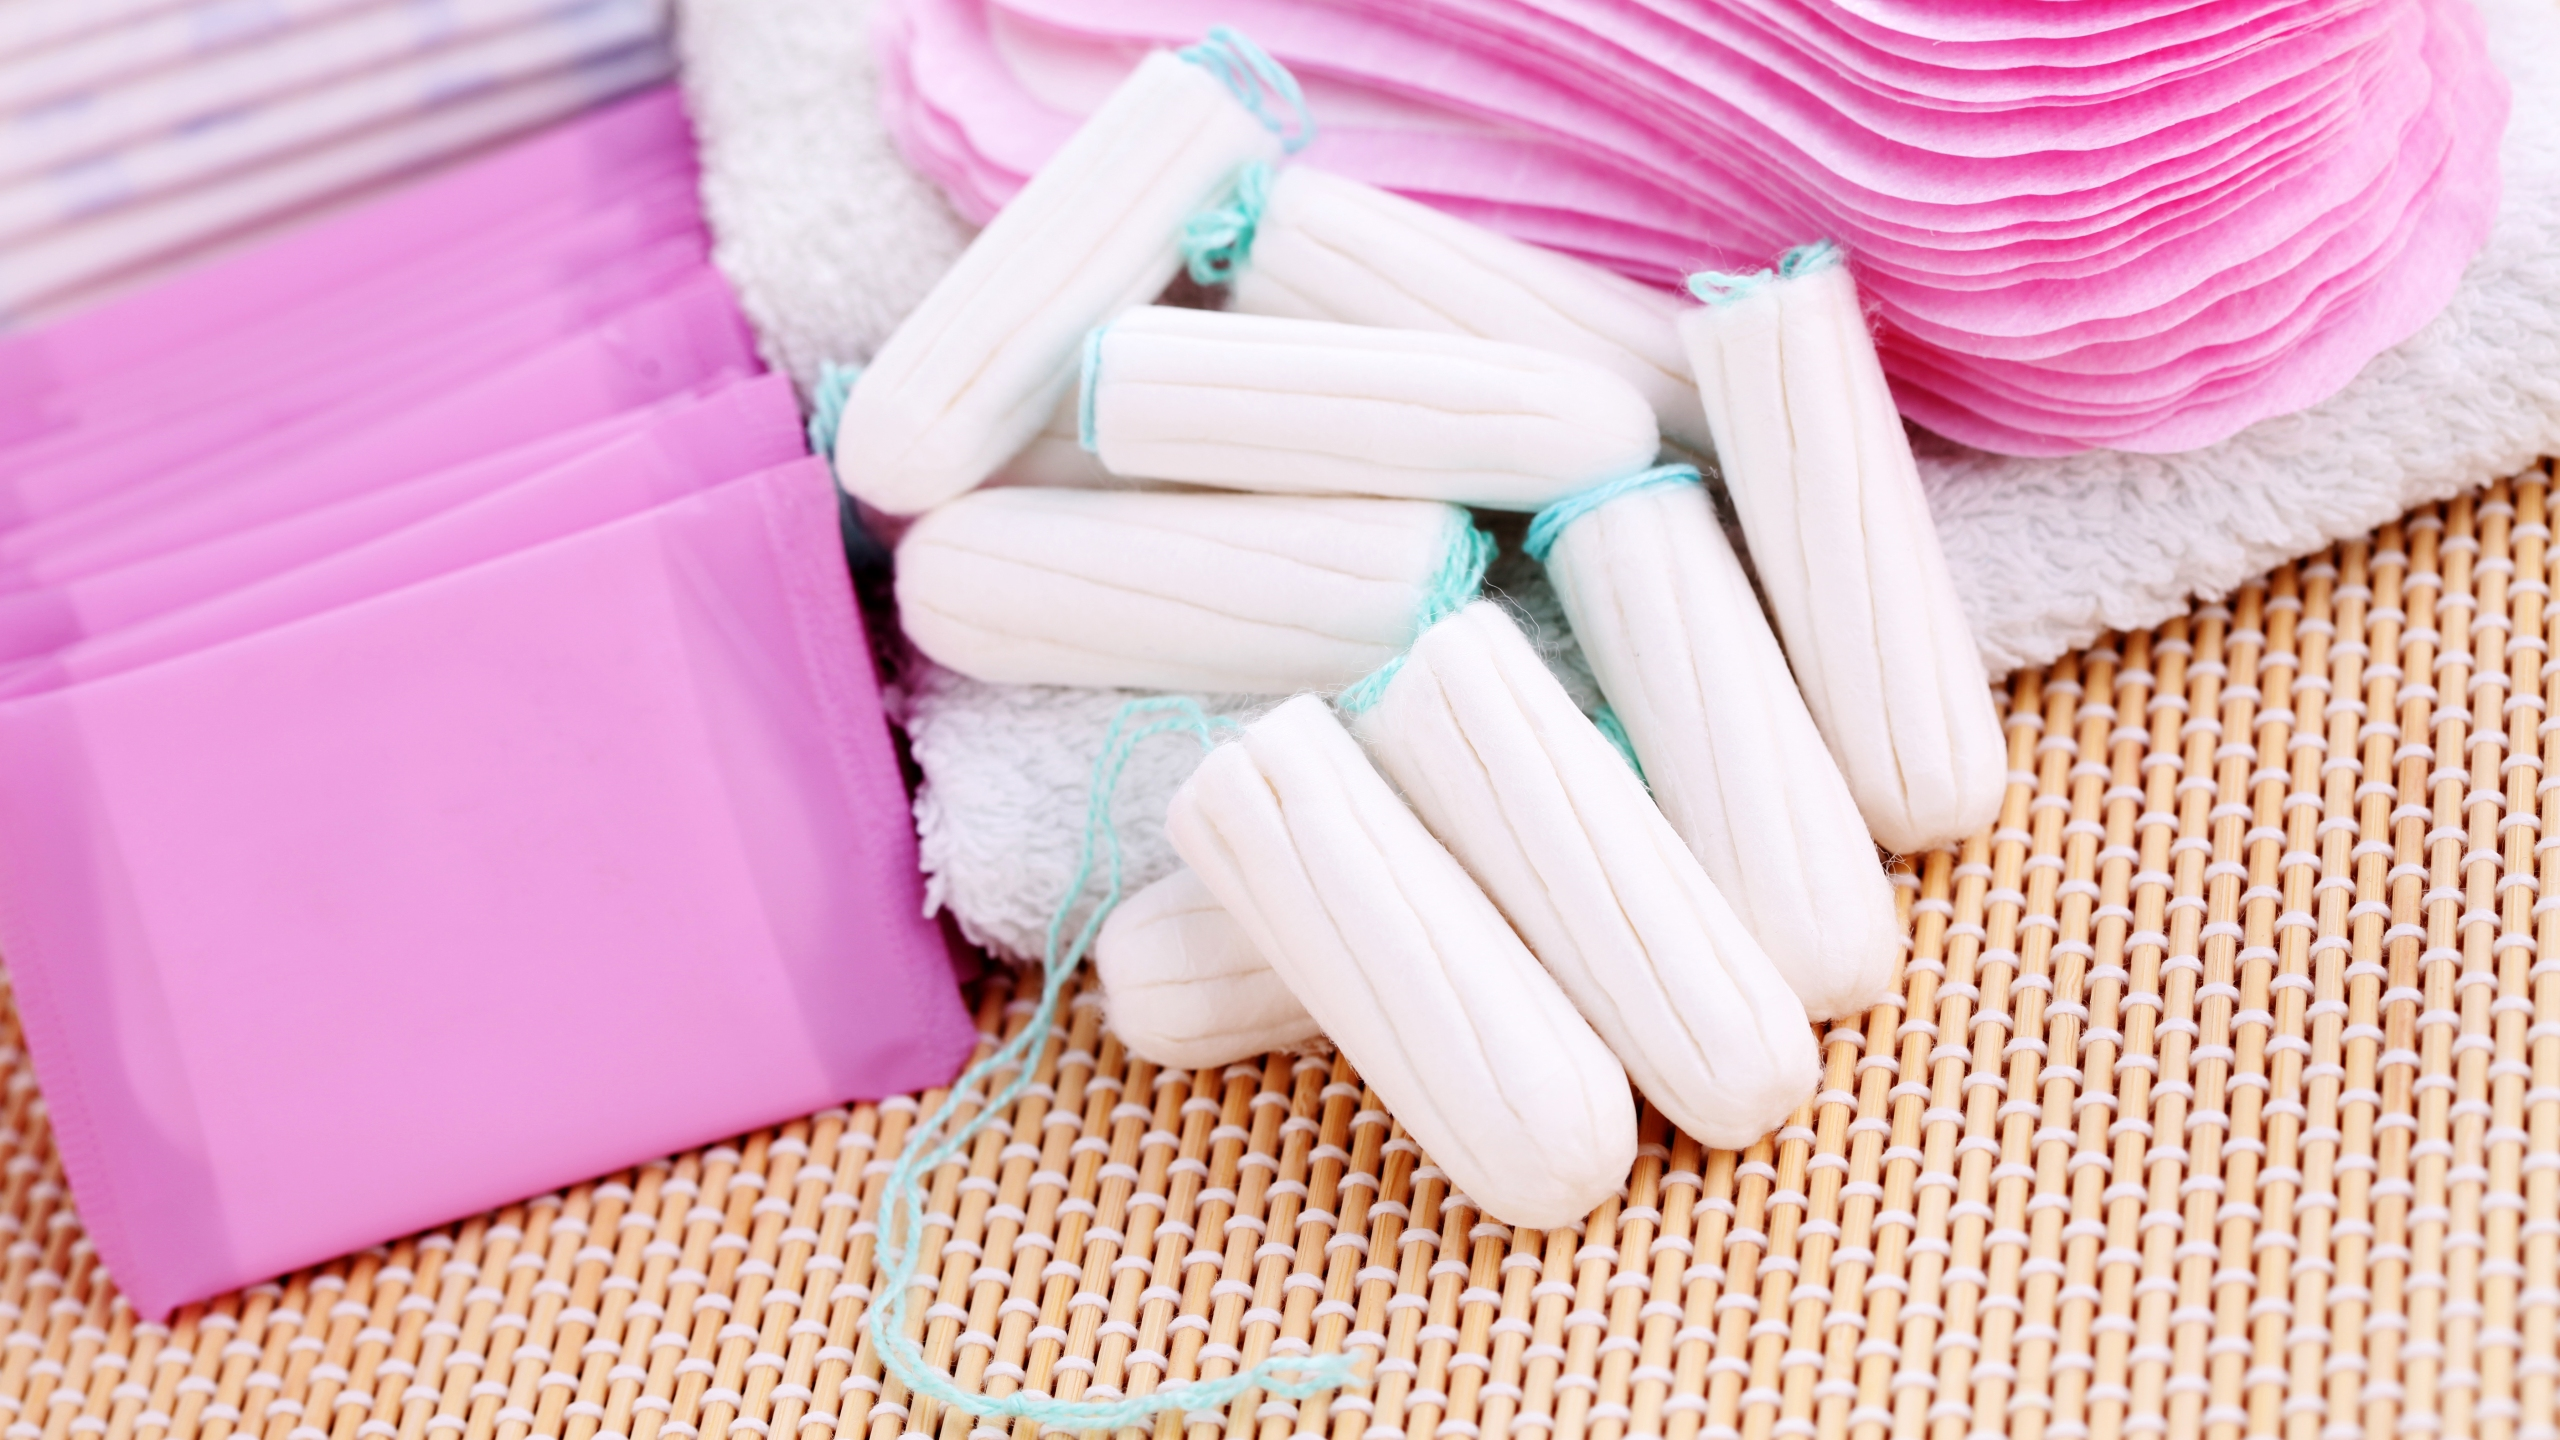 Pads, tampons and liners are seen in a file photo. (Credit: iStock / Getty Images Plus)